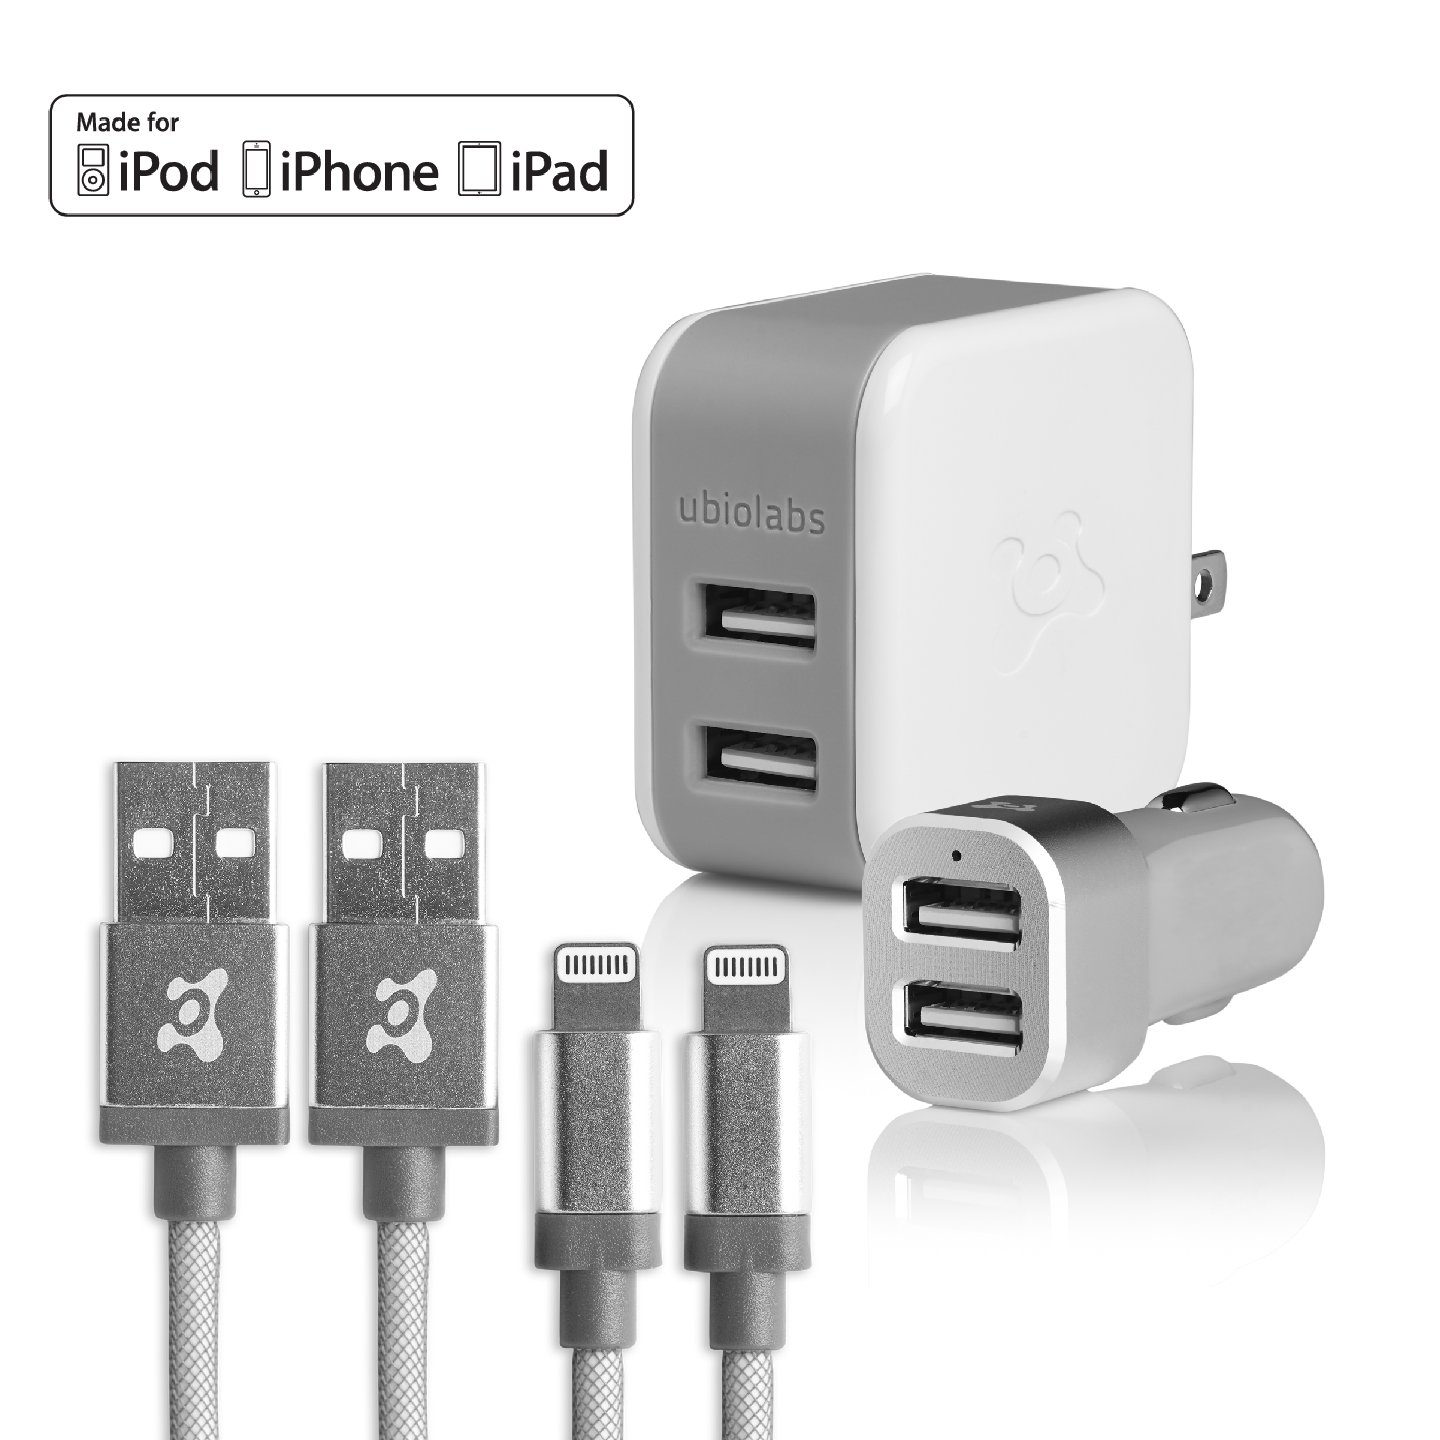 Ubio Labs MFi Certified Lightning cable kit for iPhone/iPad/iPod. Long six foot (6') braided charge/sync cord with high-speed dual USB wall and car charger. 2.4A /4.8A (24W) output for fast charge.